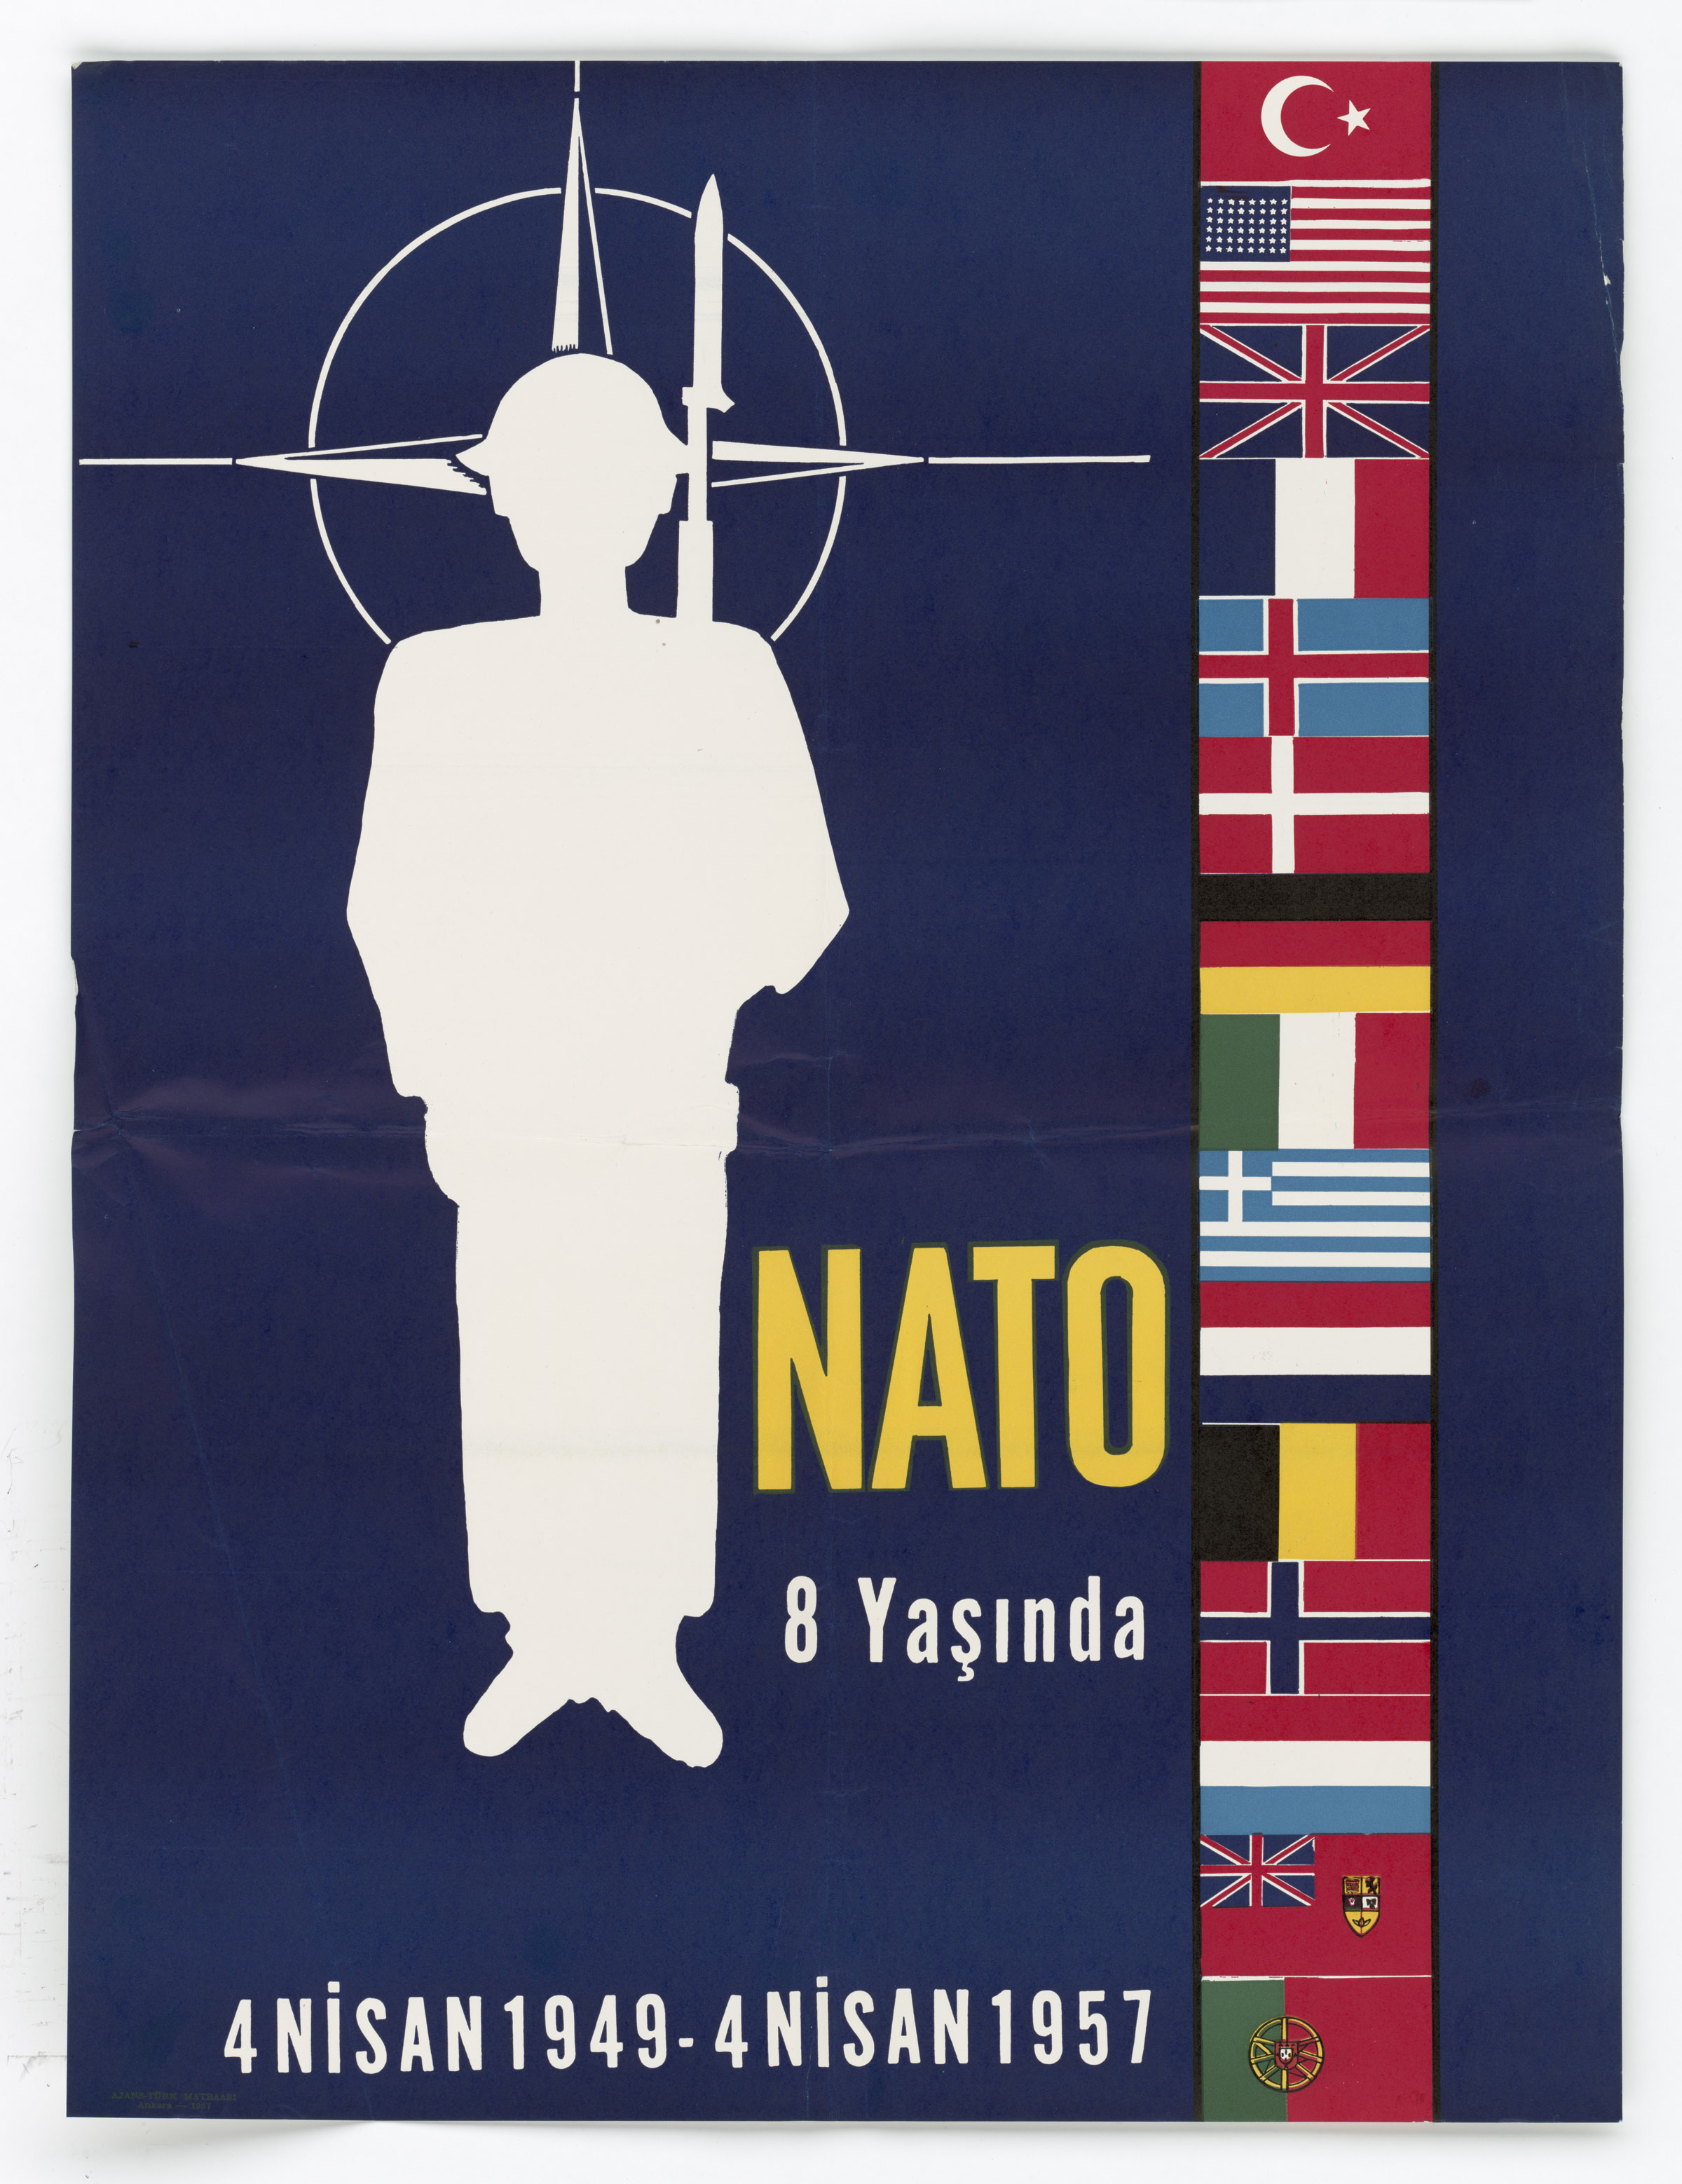 Nato S Posters The Devil Of History